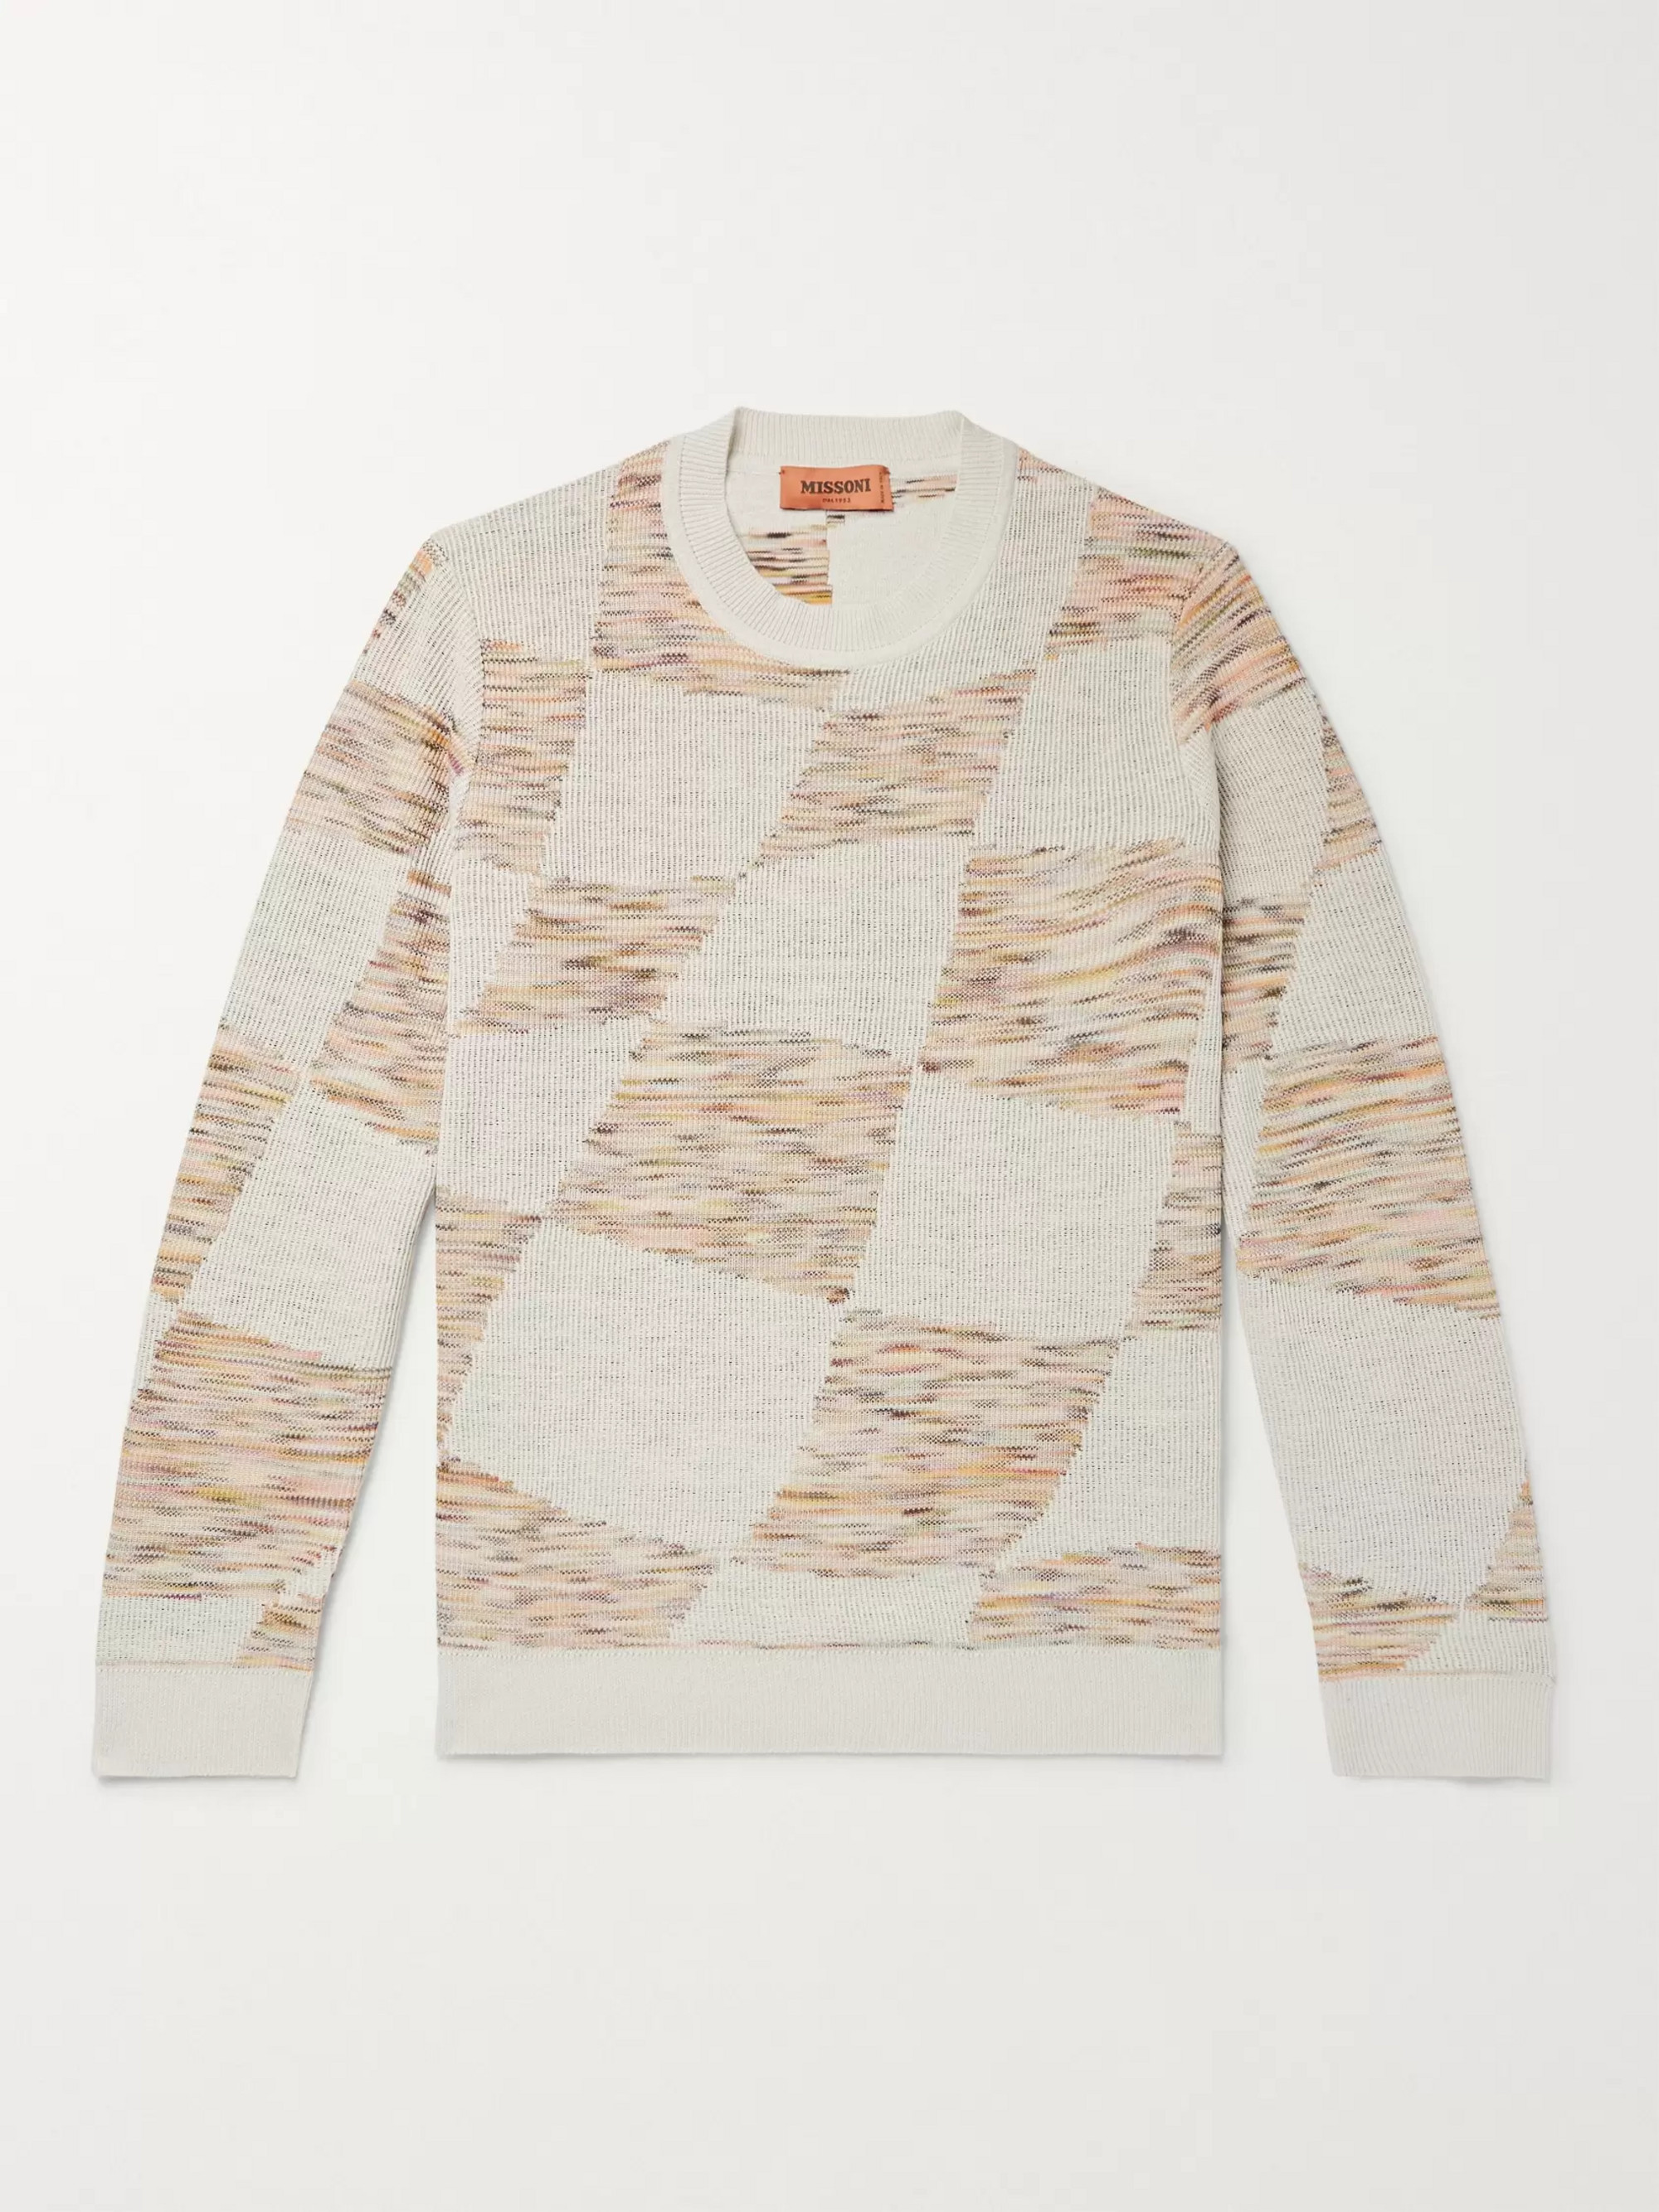 Missoni Slim-Fit Space-Dyed Double-Faced Intarsia-Knit Sweater